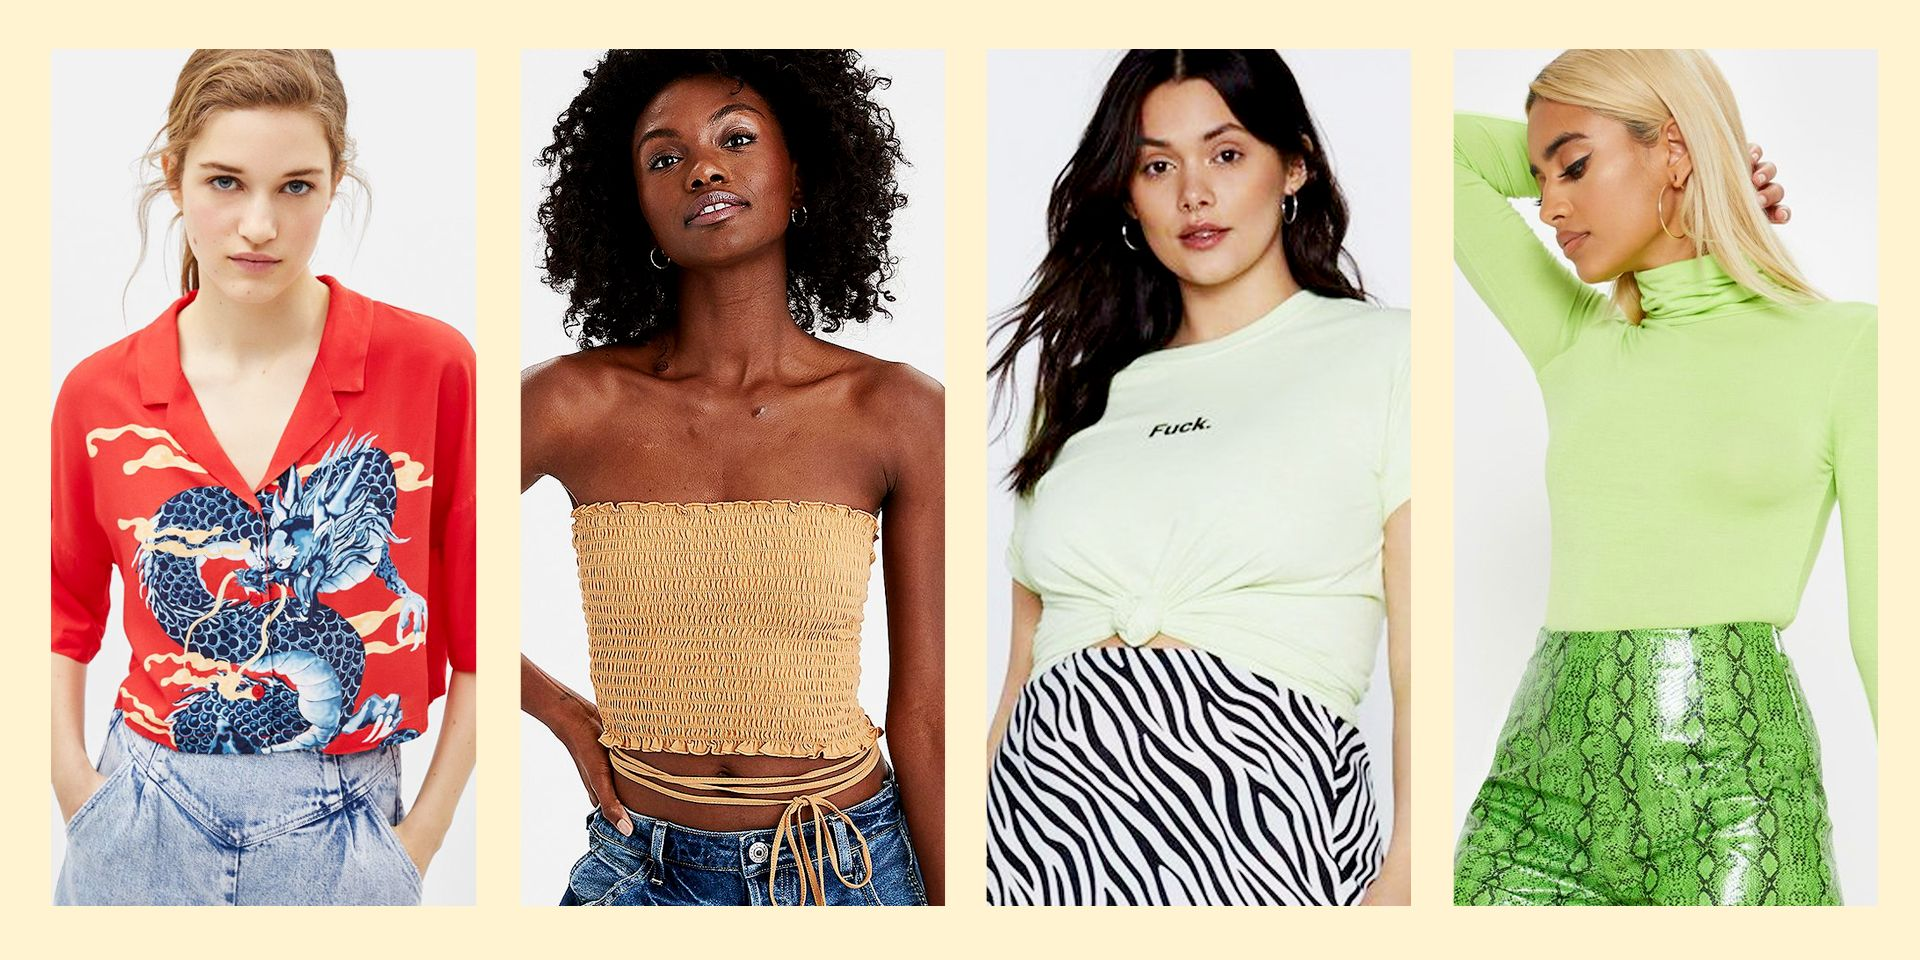 30 Best Festival Outfit Ideas For 2019 What To Wear To A Music